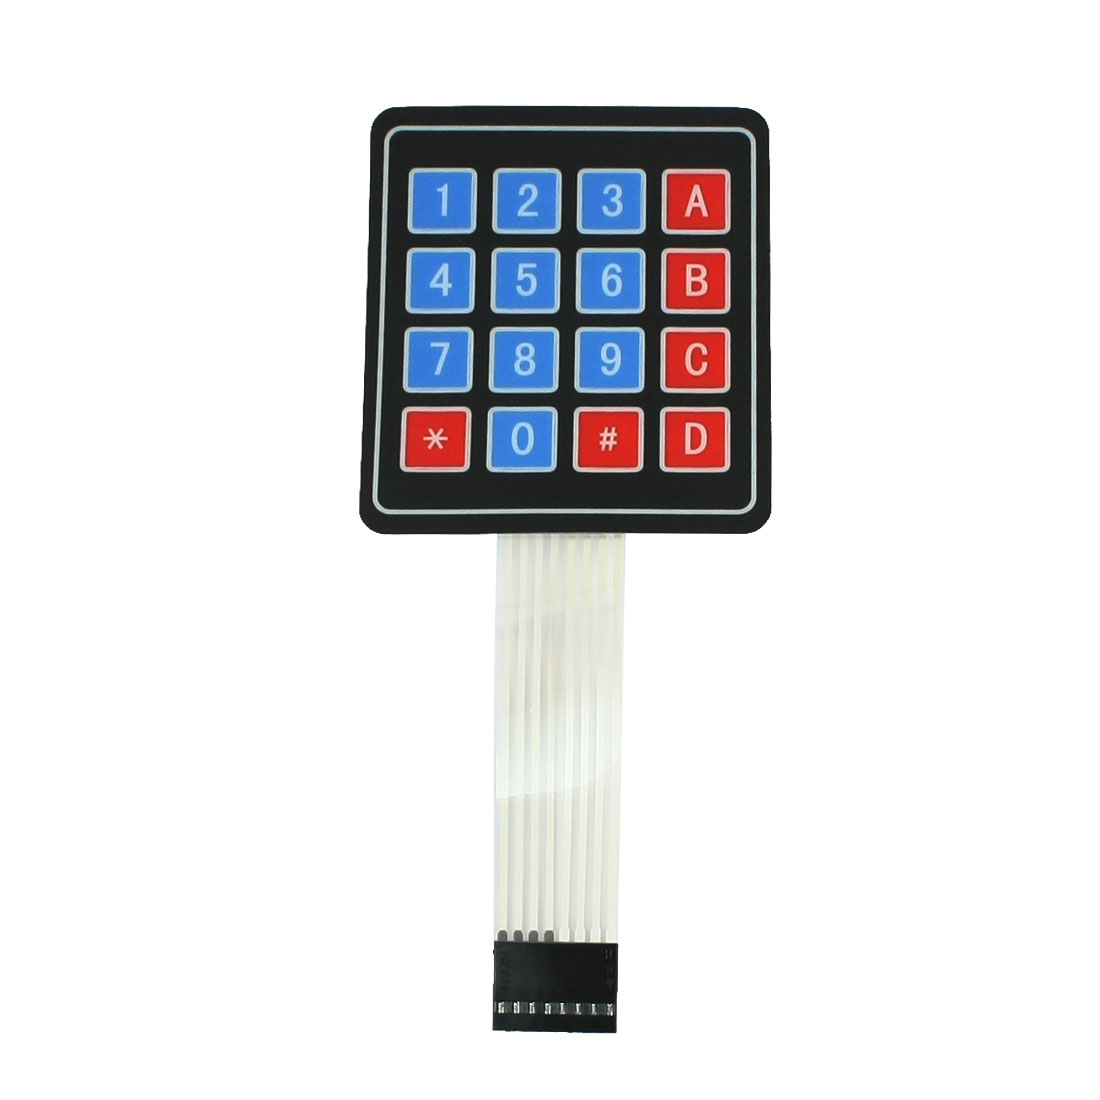 4x4 Matrix 16 Key Membrane Switch Keypad Keyboard Super Slim DC 35V